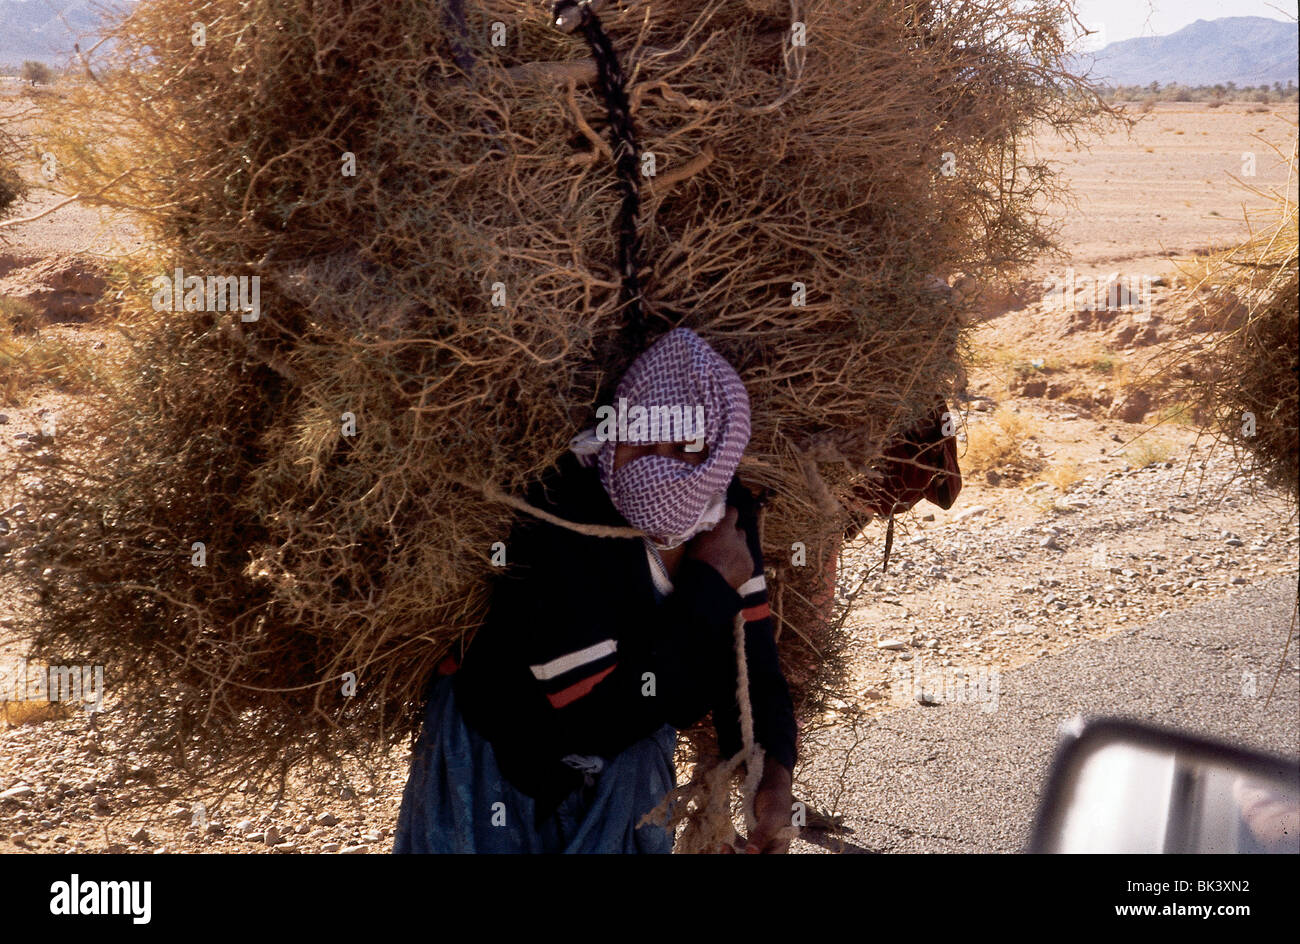 Worker carrying straw and brush near El Kelaa, Morocco - Stock Image